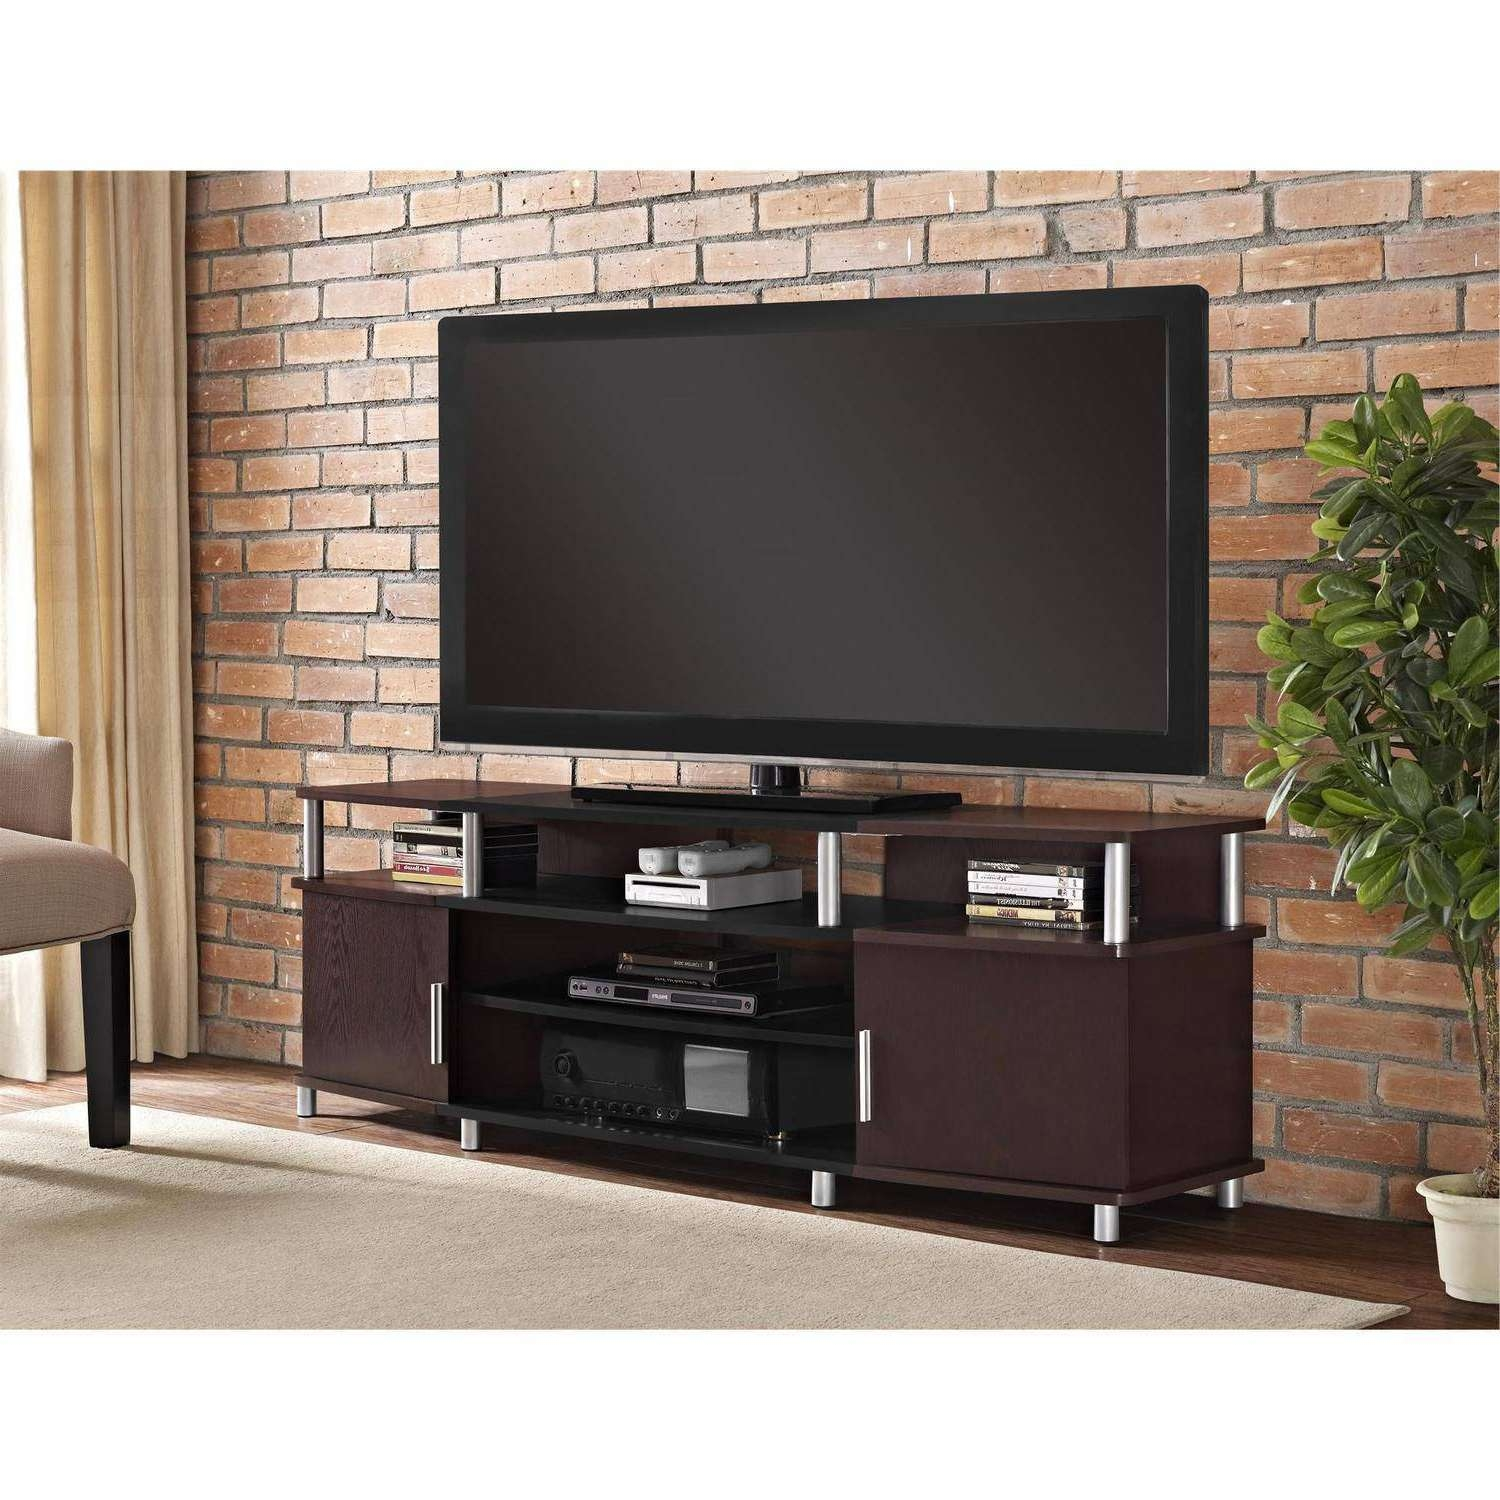 Tv Stands & Entertainment Centers – Walmart For Tv Stands 40 Inches Wide (View 12 of 15)